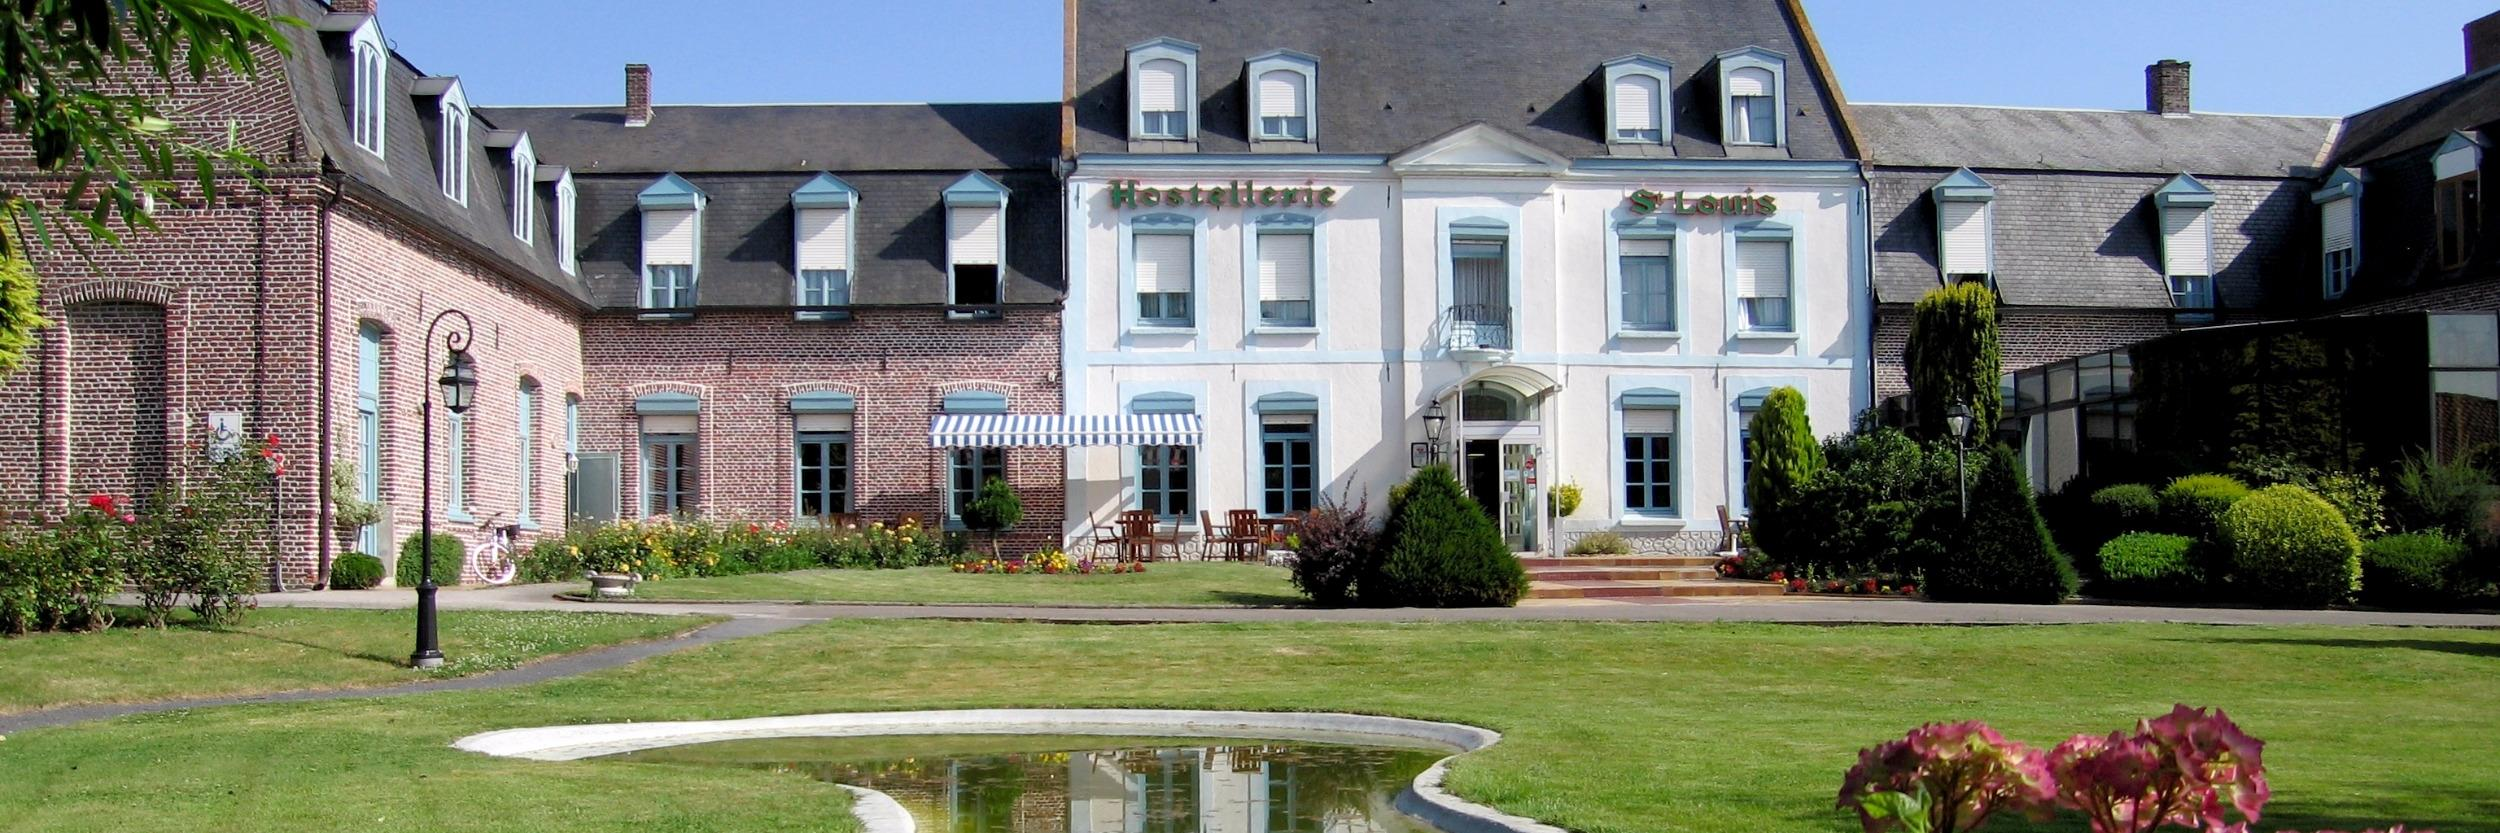 Logis Hostellerie Saint Louis -